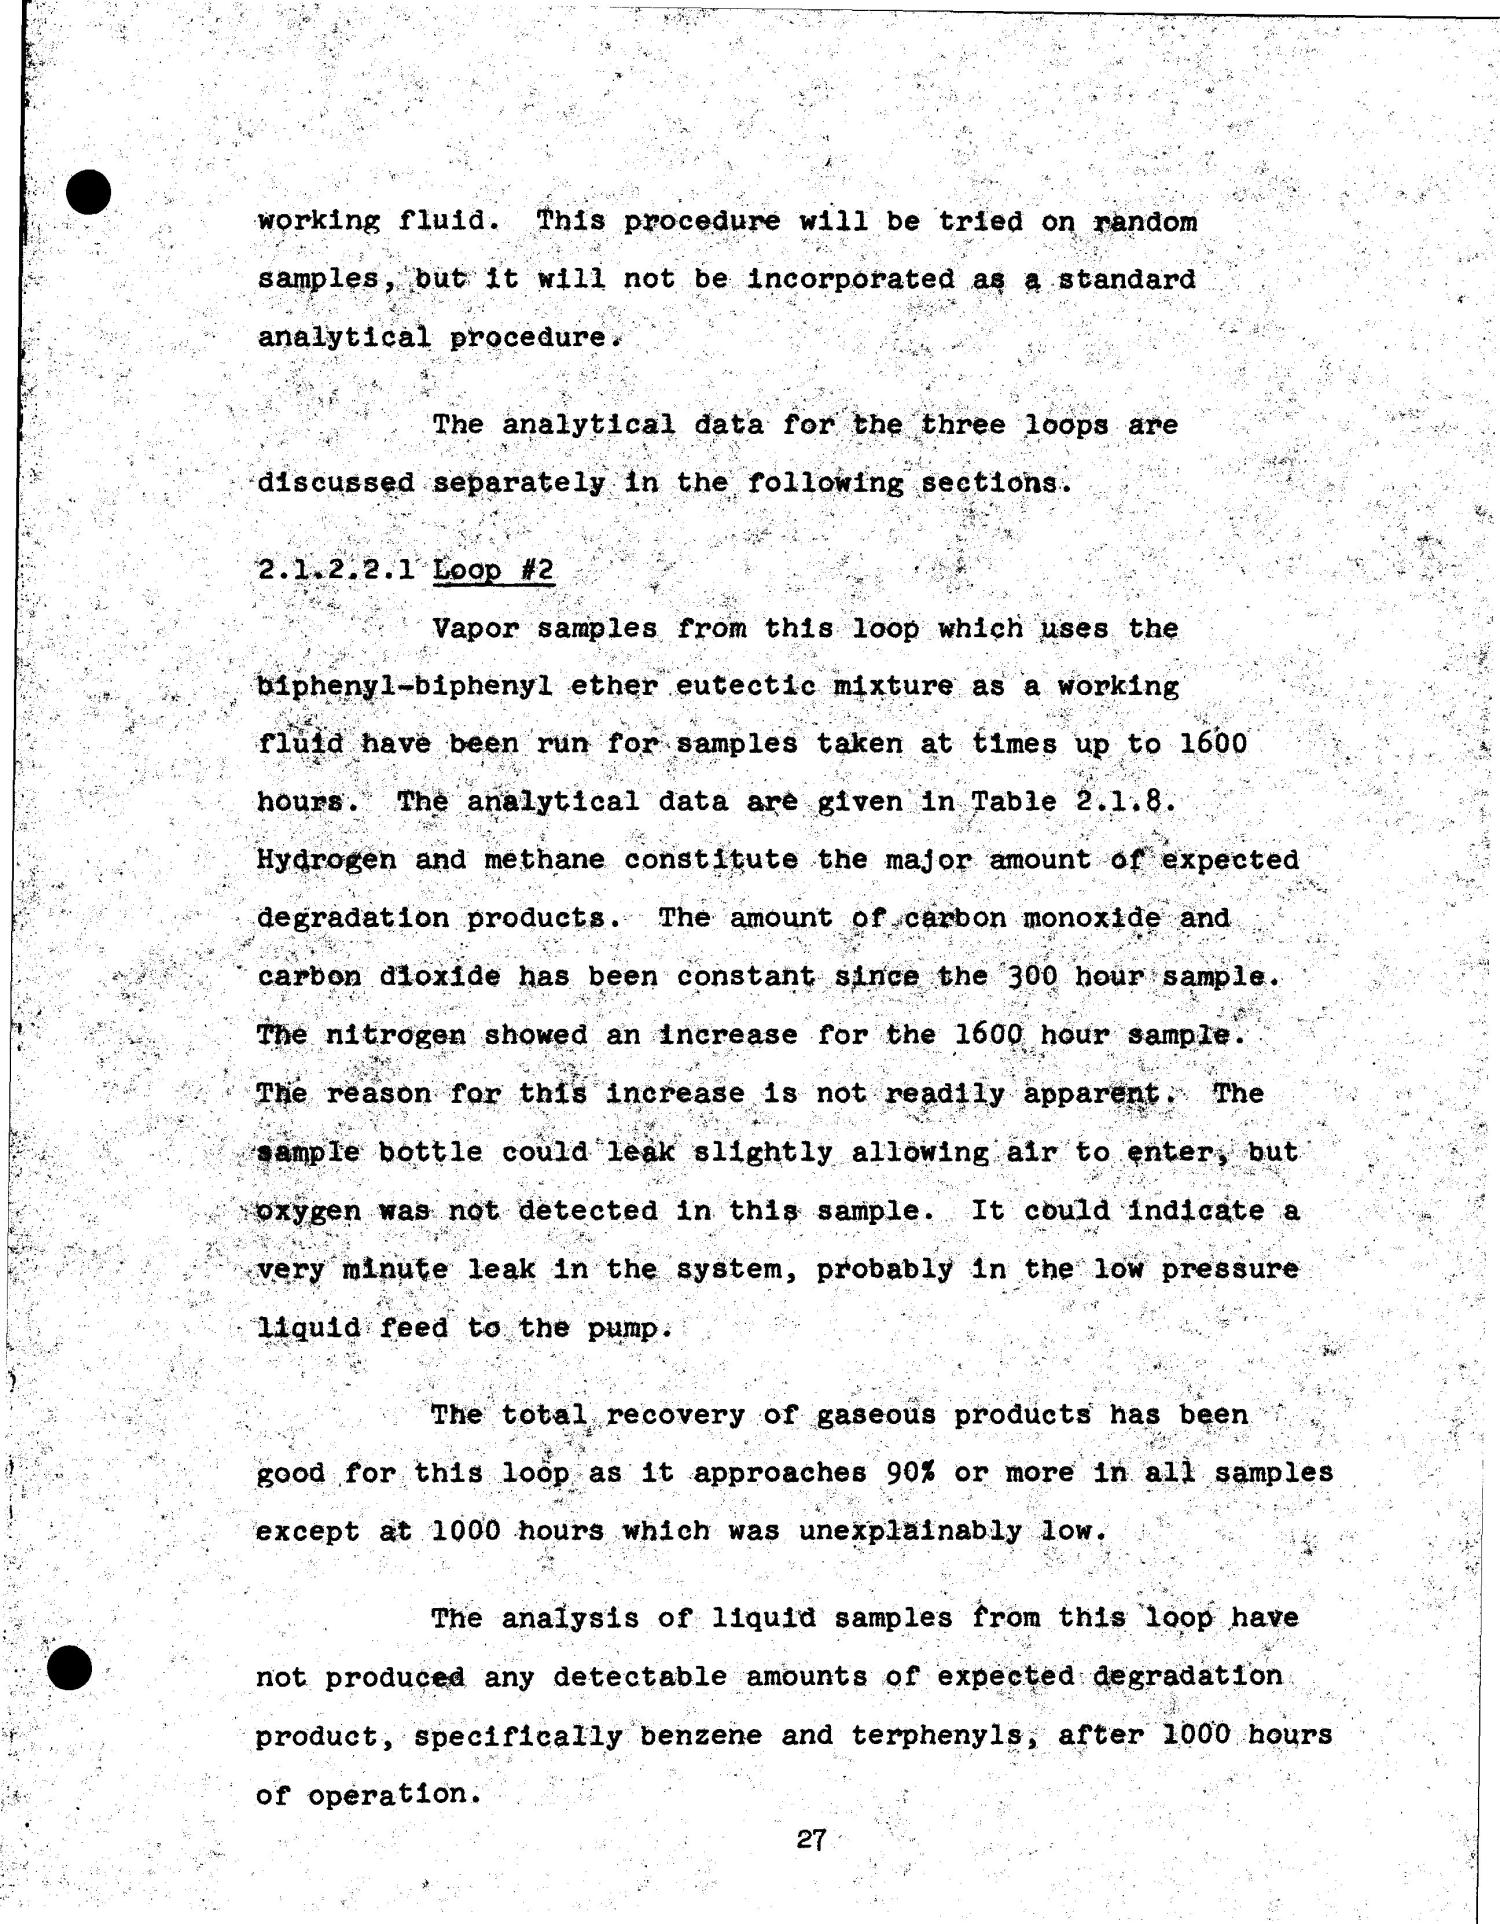 ORGANIC RANKINE CYCLE TECHNOLOGY PROGRAM. Quarterly Progress Report No. 6, July 1, 1967--October 1, 1967.                                                                                                      [Sequence #]: 36 of 62